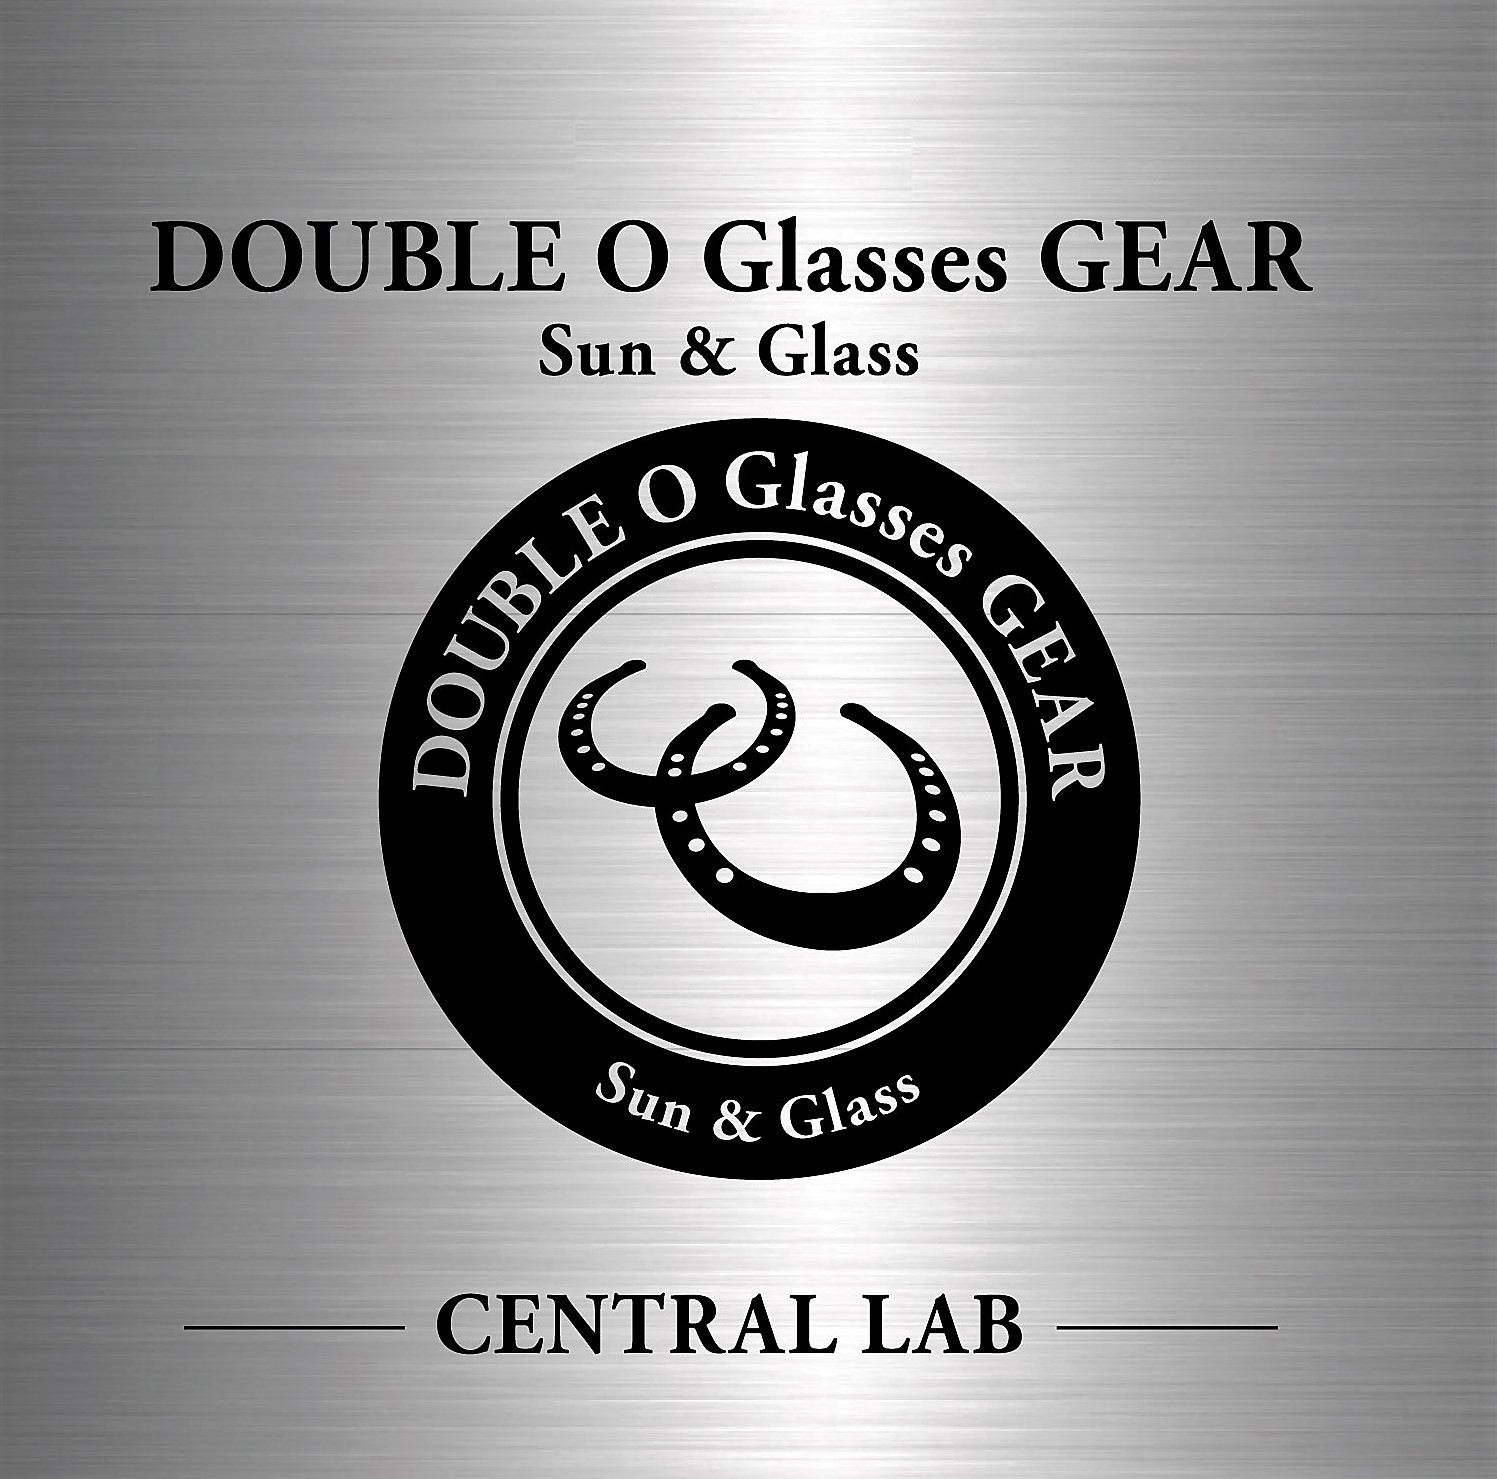 DOUBLE O GlassesGEAR